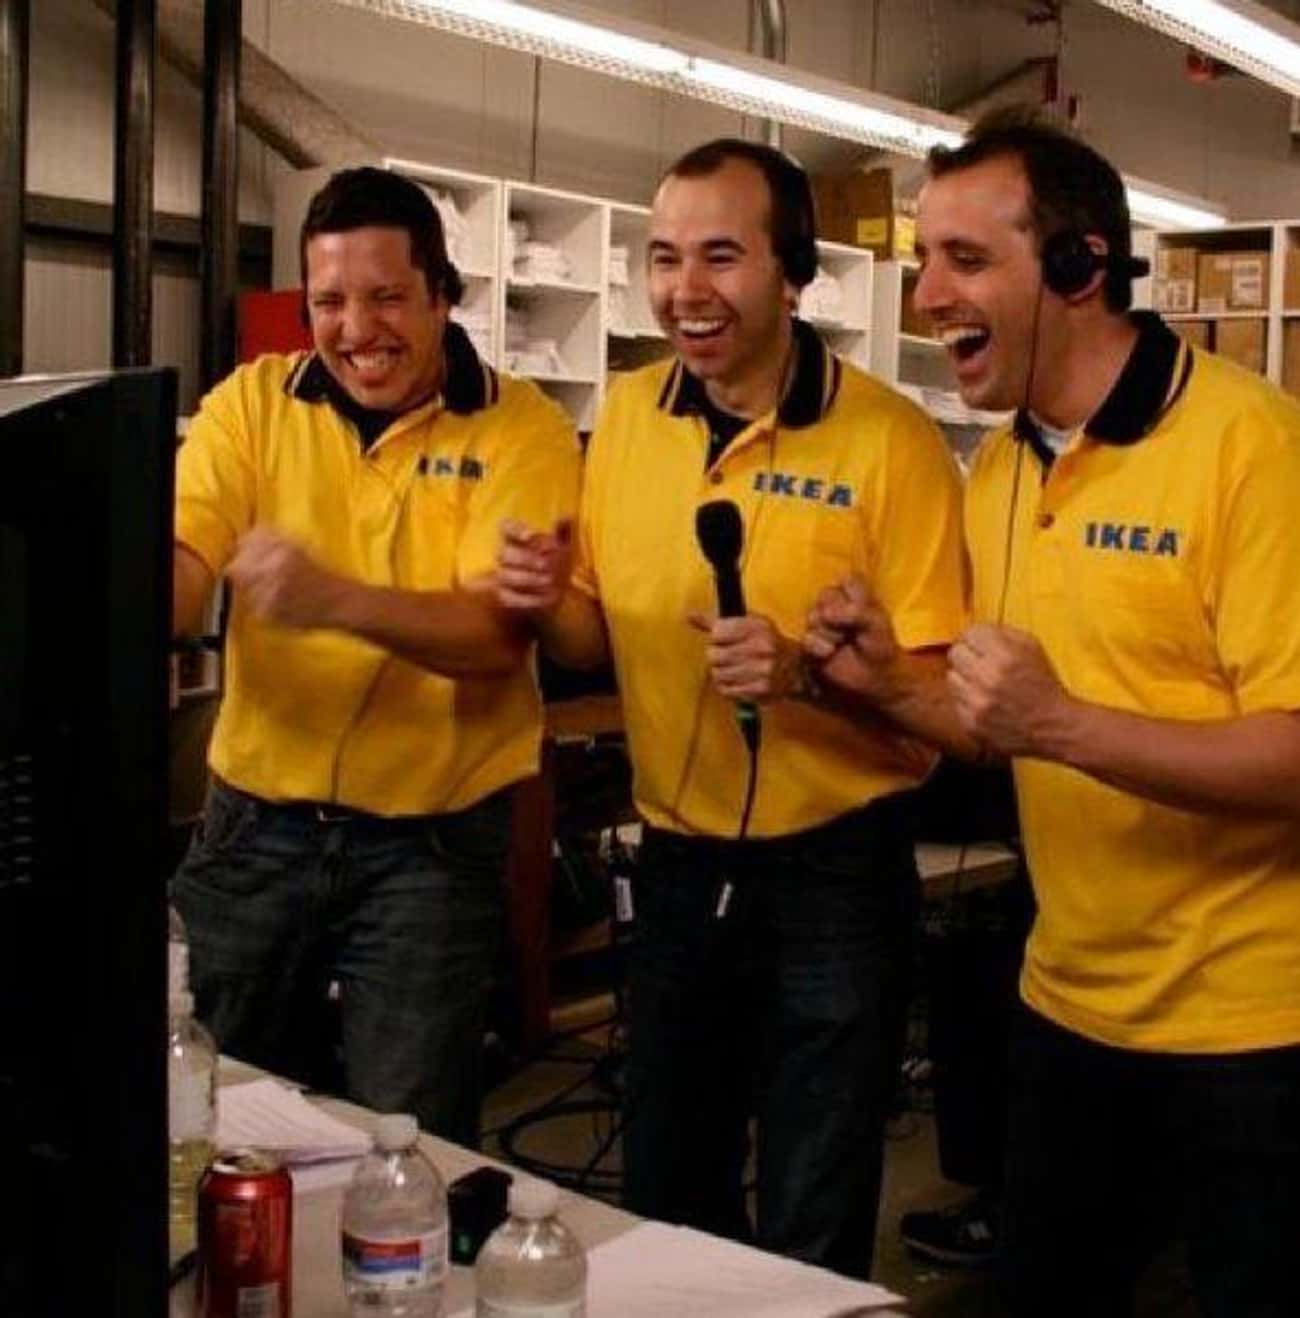 They Once Caught Someone Havin is listed (or ranked) 4 on the list Behind-The-Scenes Secrets From 'Impractical Jokers'